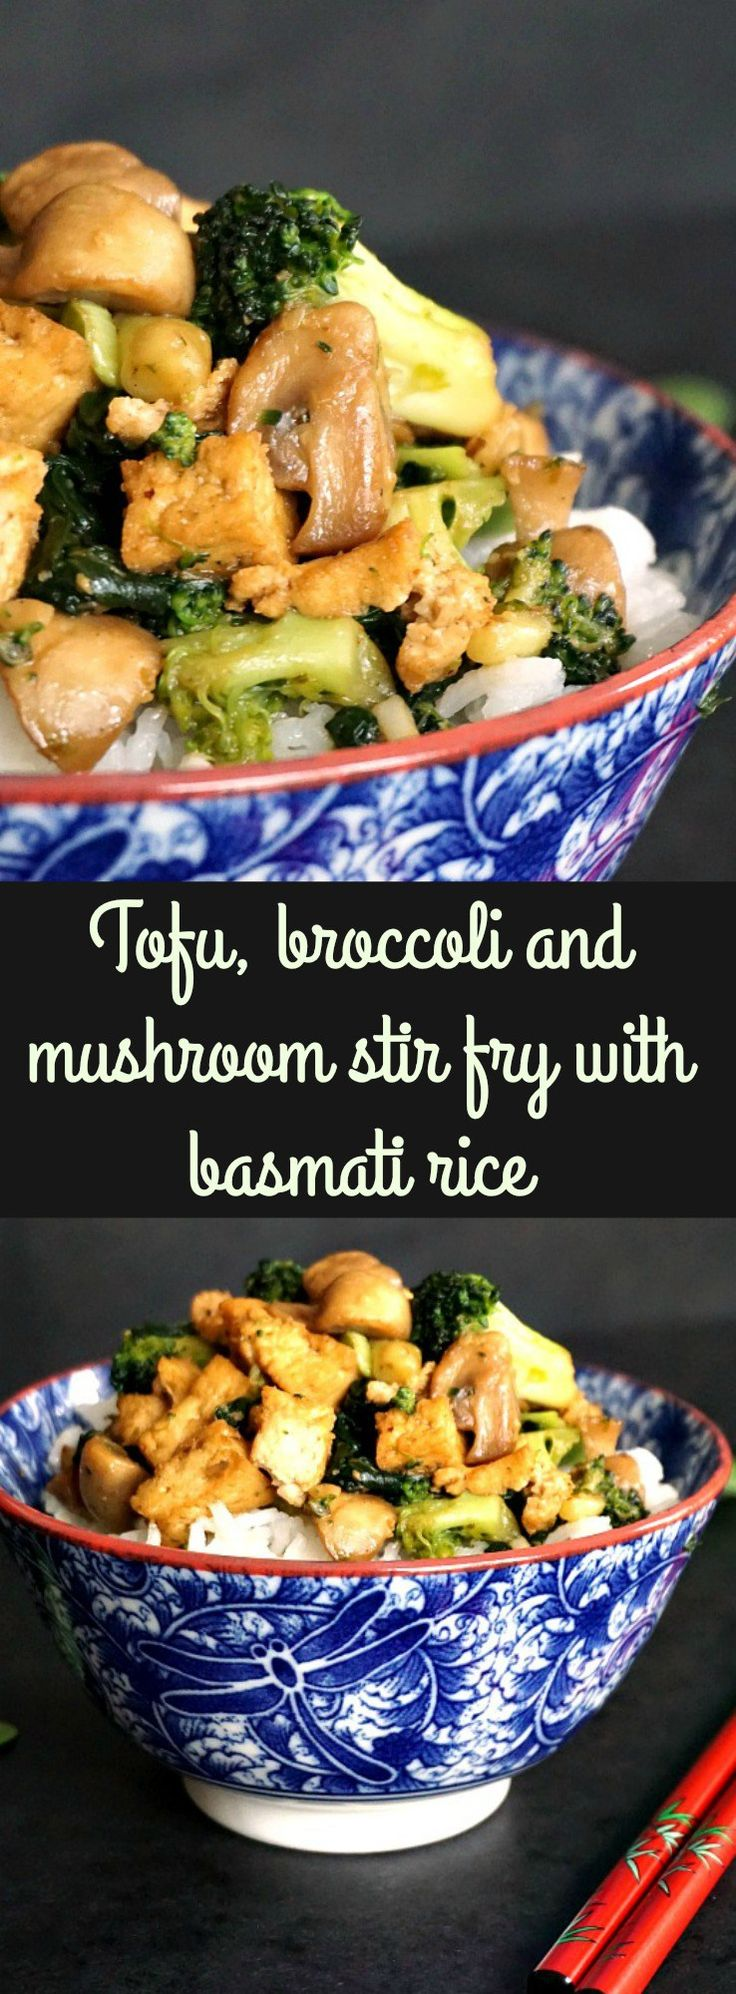 Tofu, broccoli and mushroom stir fry with basmati rice, a delicious under 30-minute dinner that is vegan and gluten free.